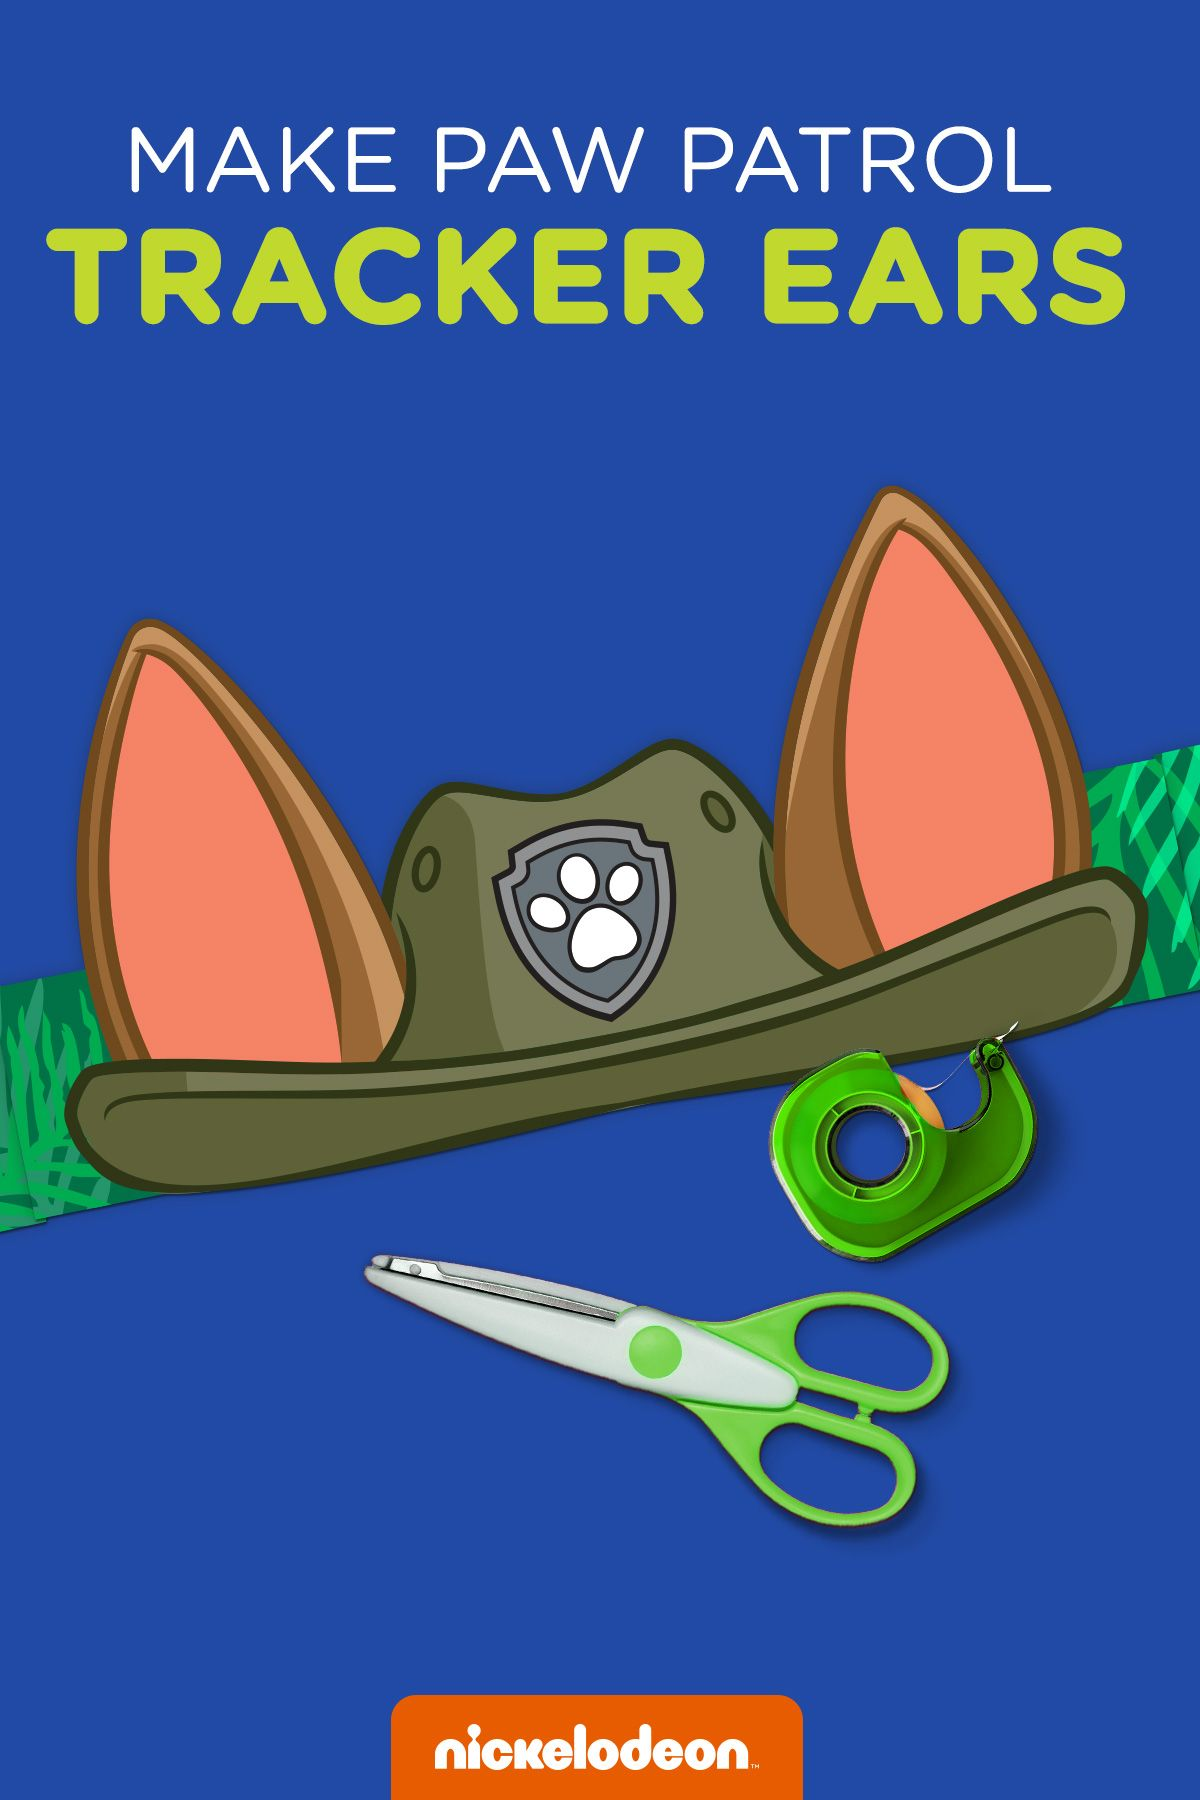 Paw patrol coloring pages tracker - Paw Patrol Tracker Printable Ears